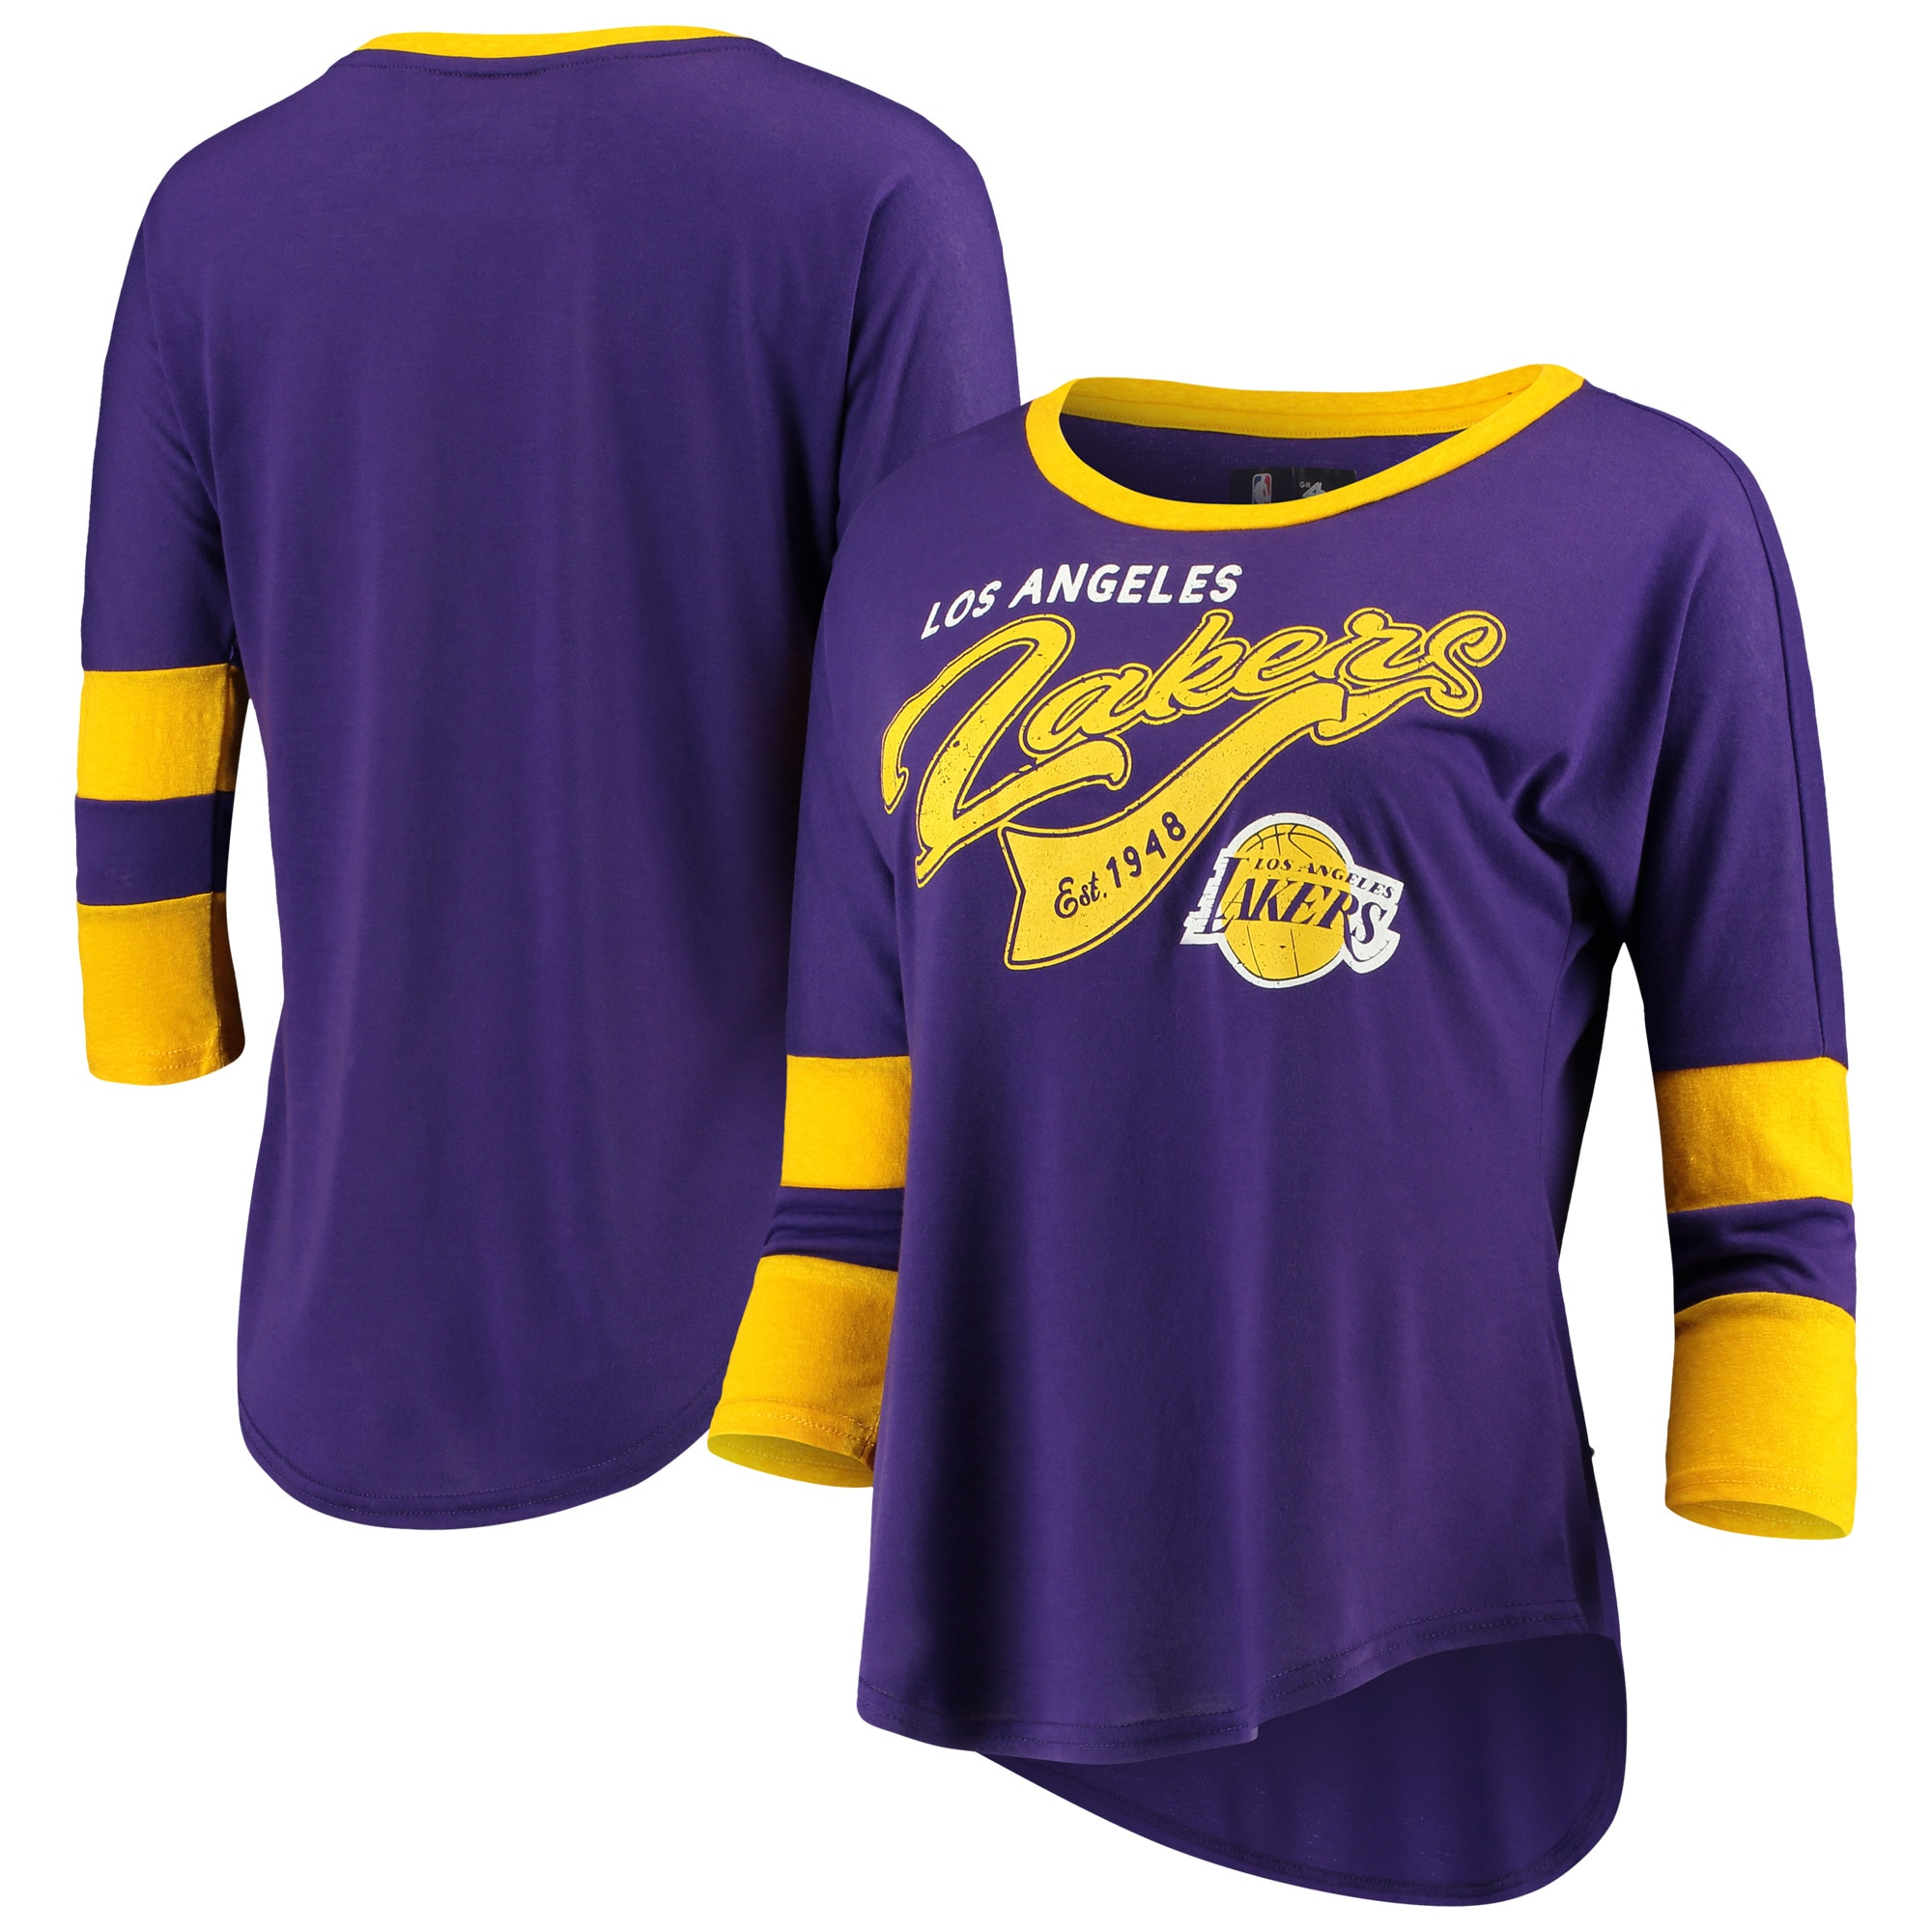 Los Angeles Lakers G-III 4Her by Carl Banks Women's Game Changer Viscose Jersey 3/4-Sleeve T-Shirt - Purple/Gold